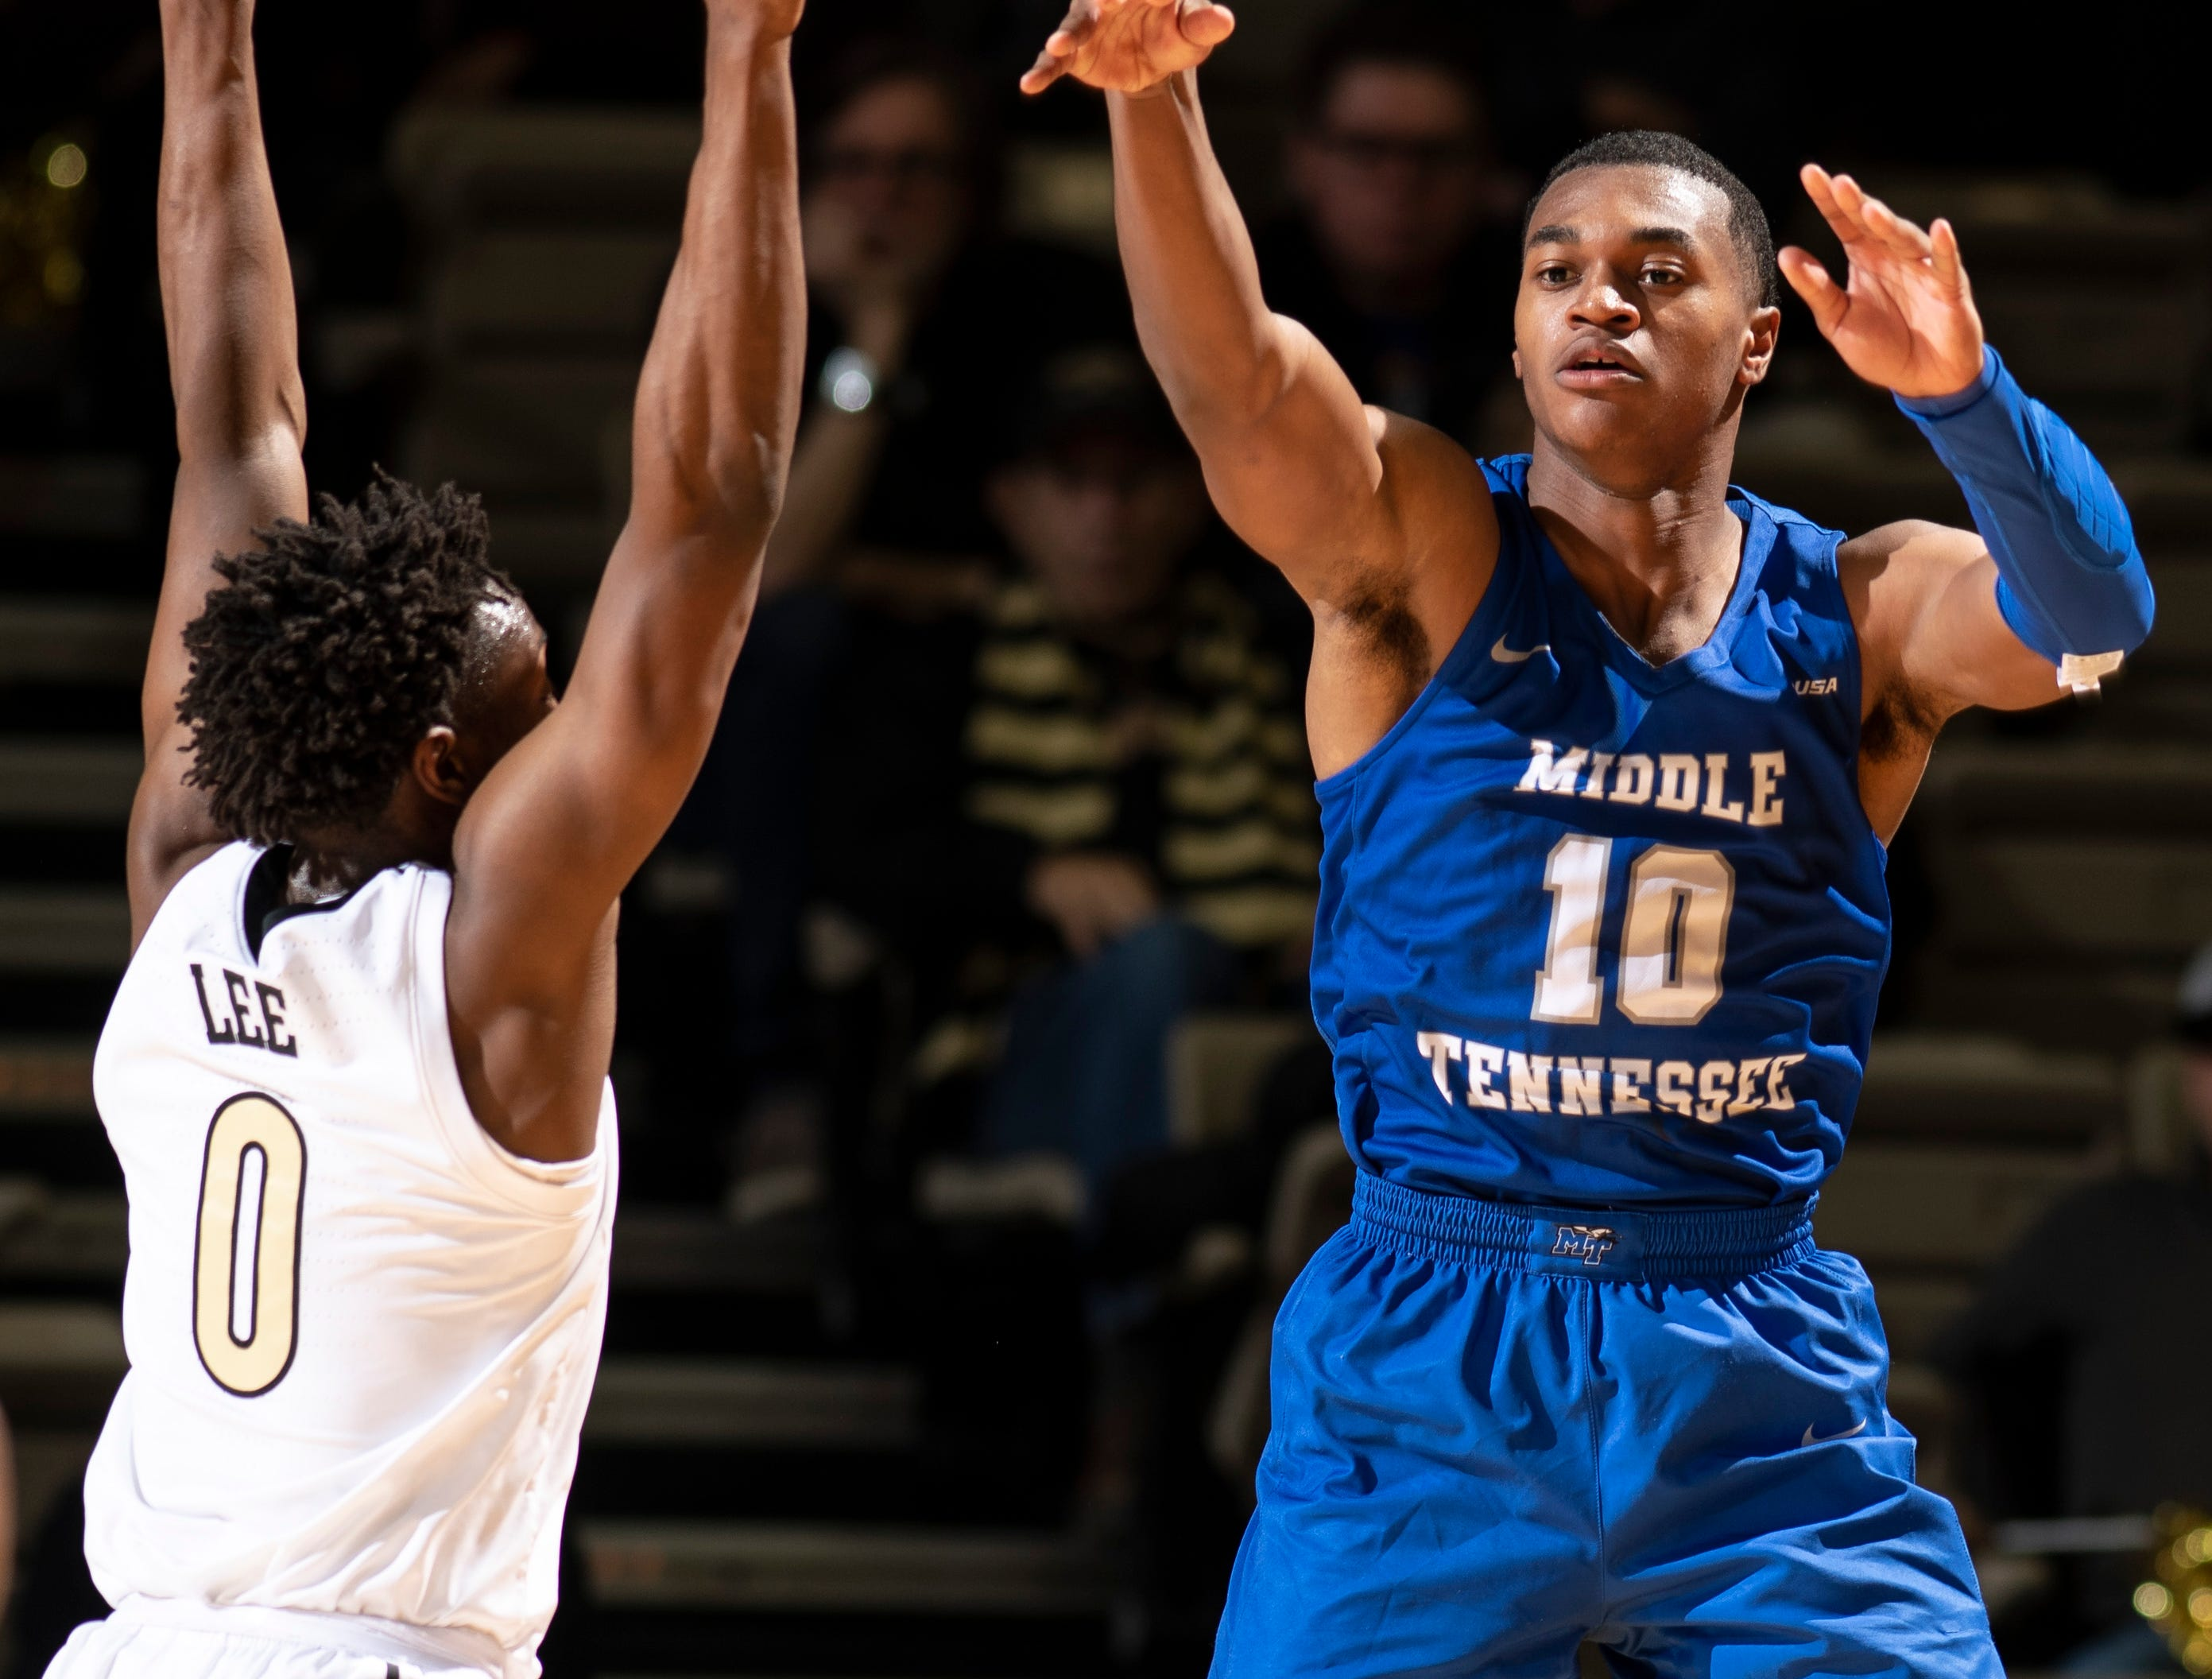 MTSU guard Jayce Johnson (10) passes over Vanderbilt guard Saben Lee (0) during the first half at Memorial Gym in Nashville, Tenn., Wednesday, Dec. 5, 2018.